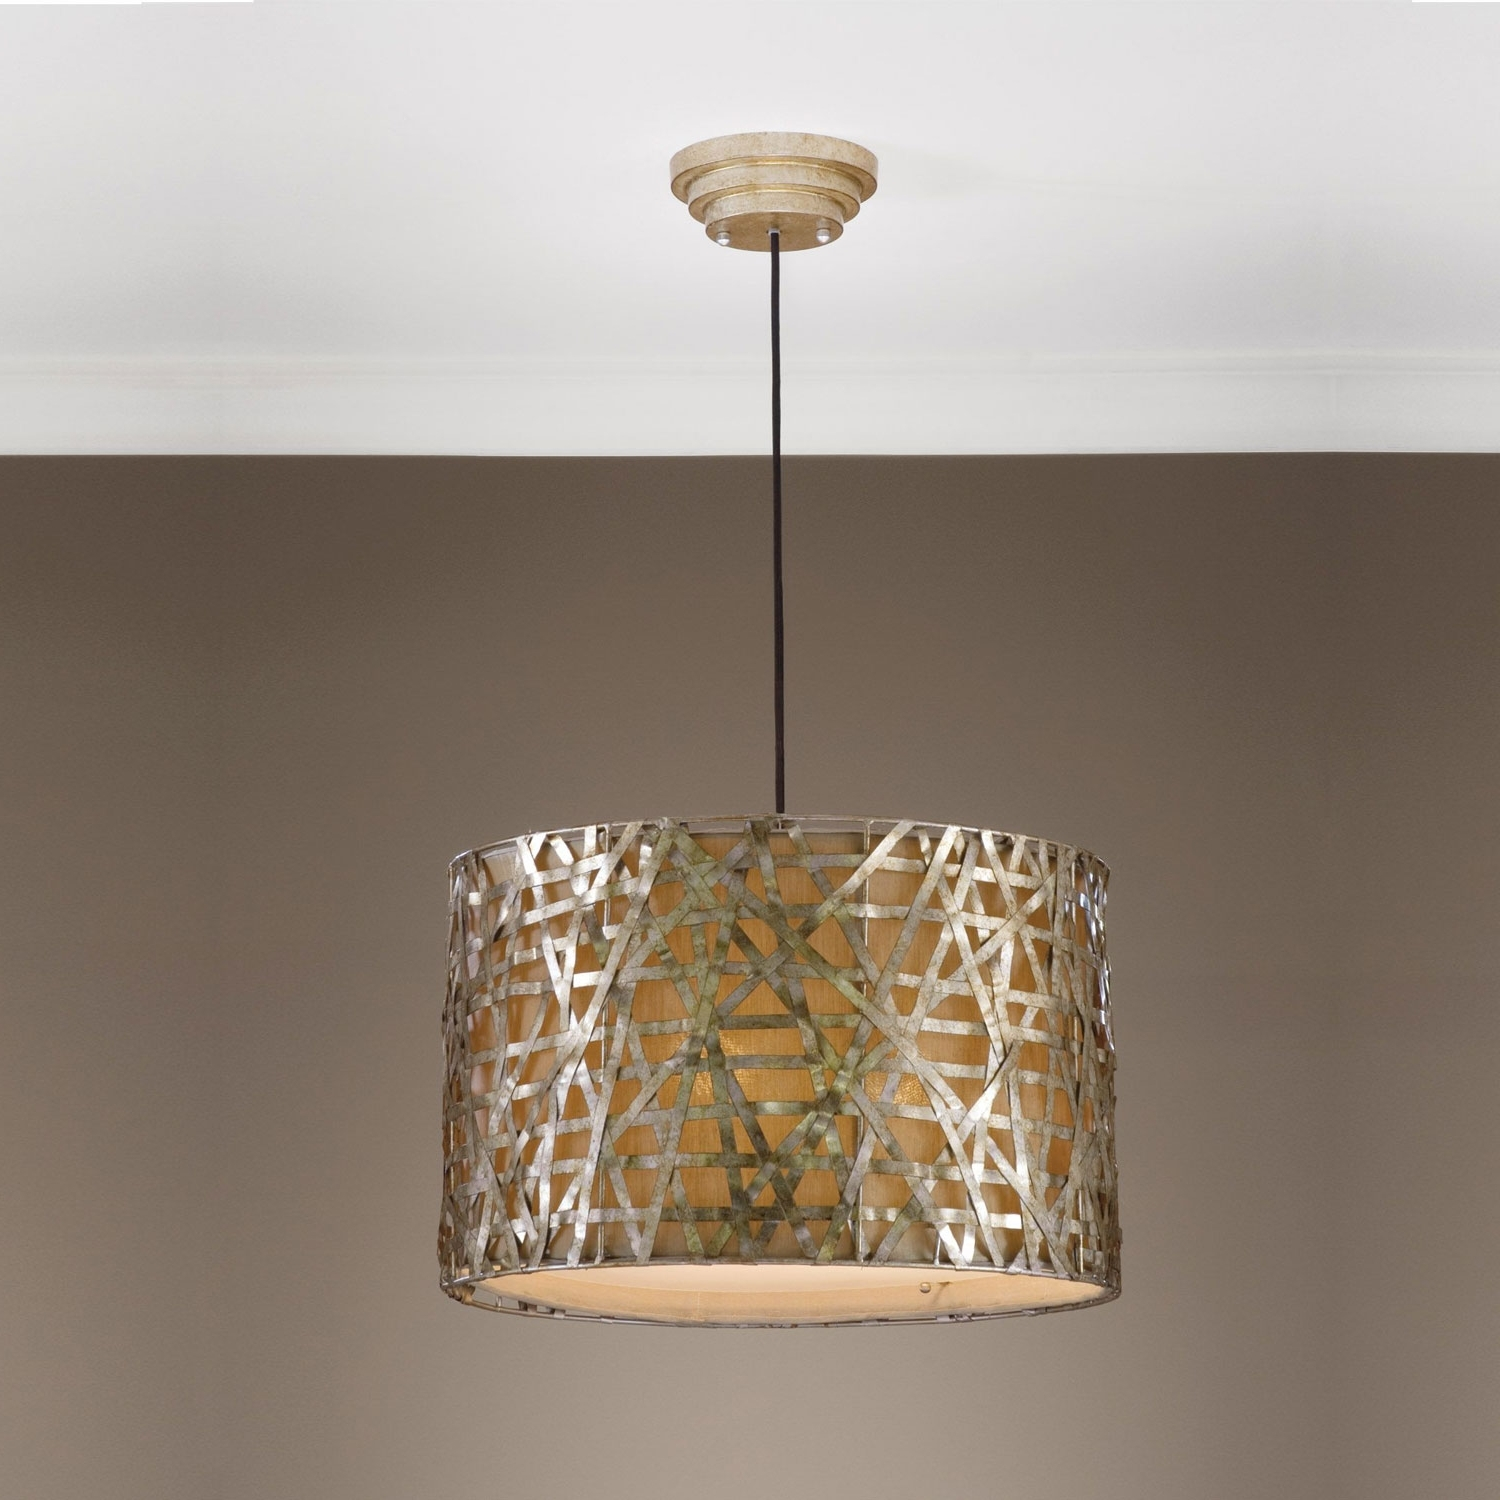 Well Known Light Fixture : Large Glass Pendant Lighting Semi Flush Mount Within Metal Drum Chandeliers (View 13 of 15)